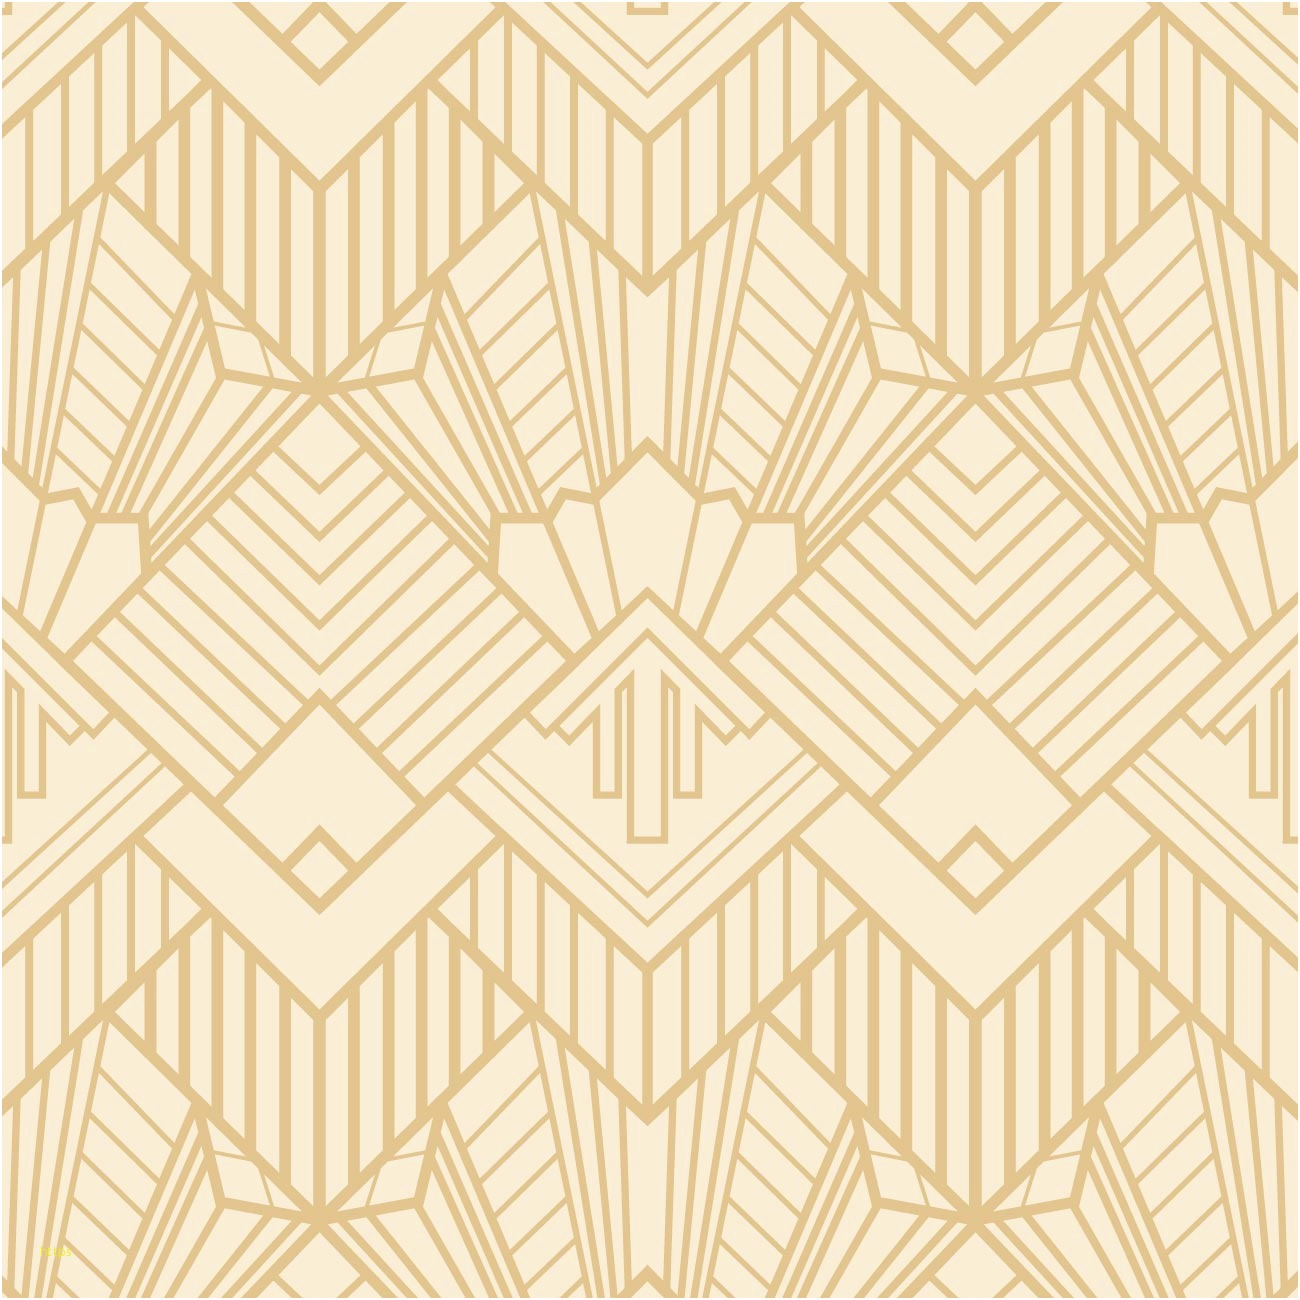 11 116667 art deco wallpaper unique schol art deco geometric